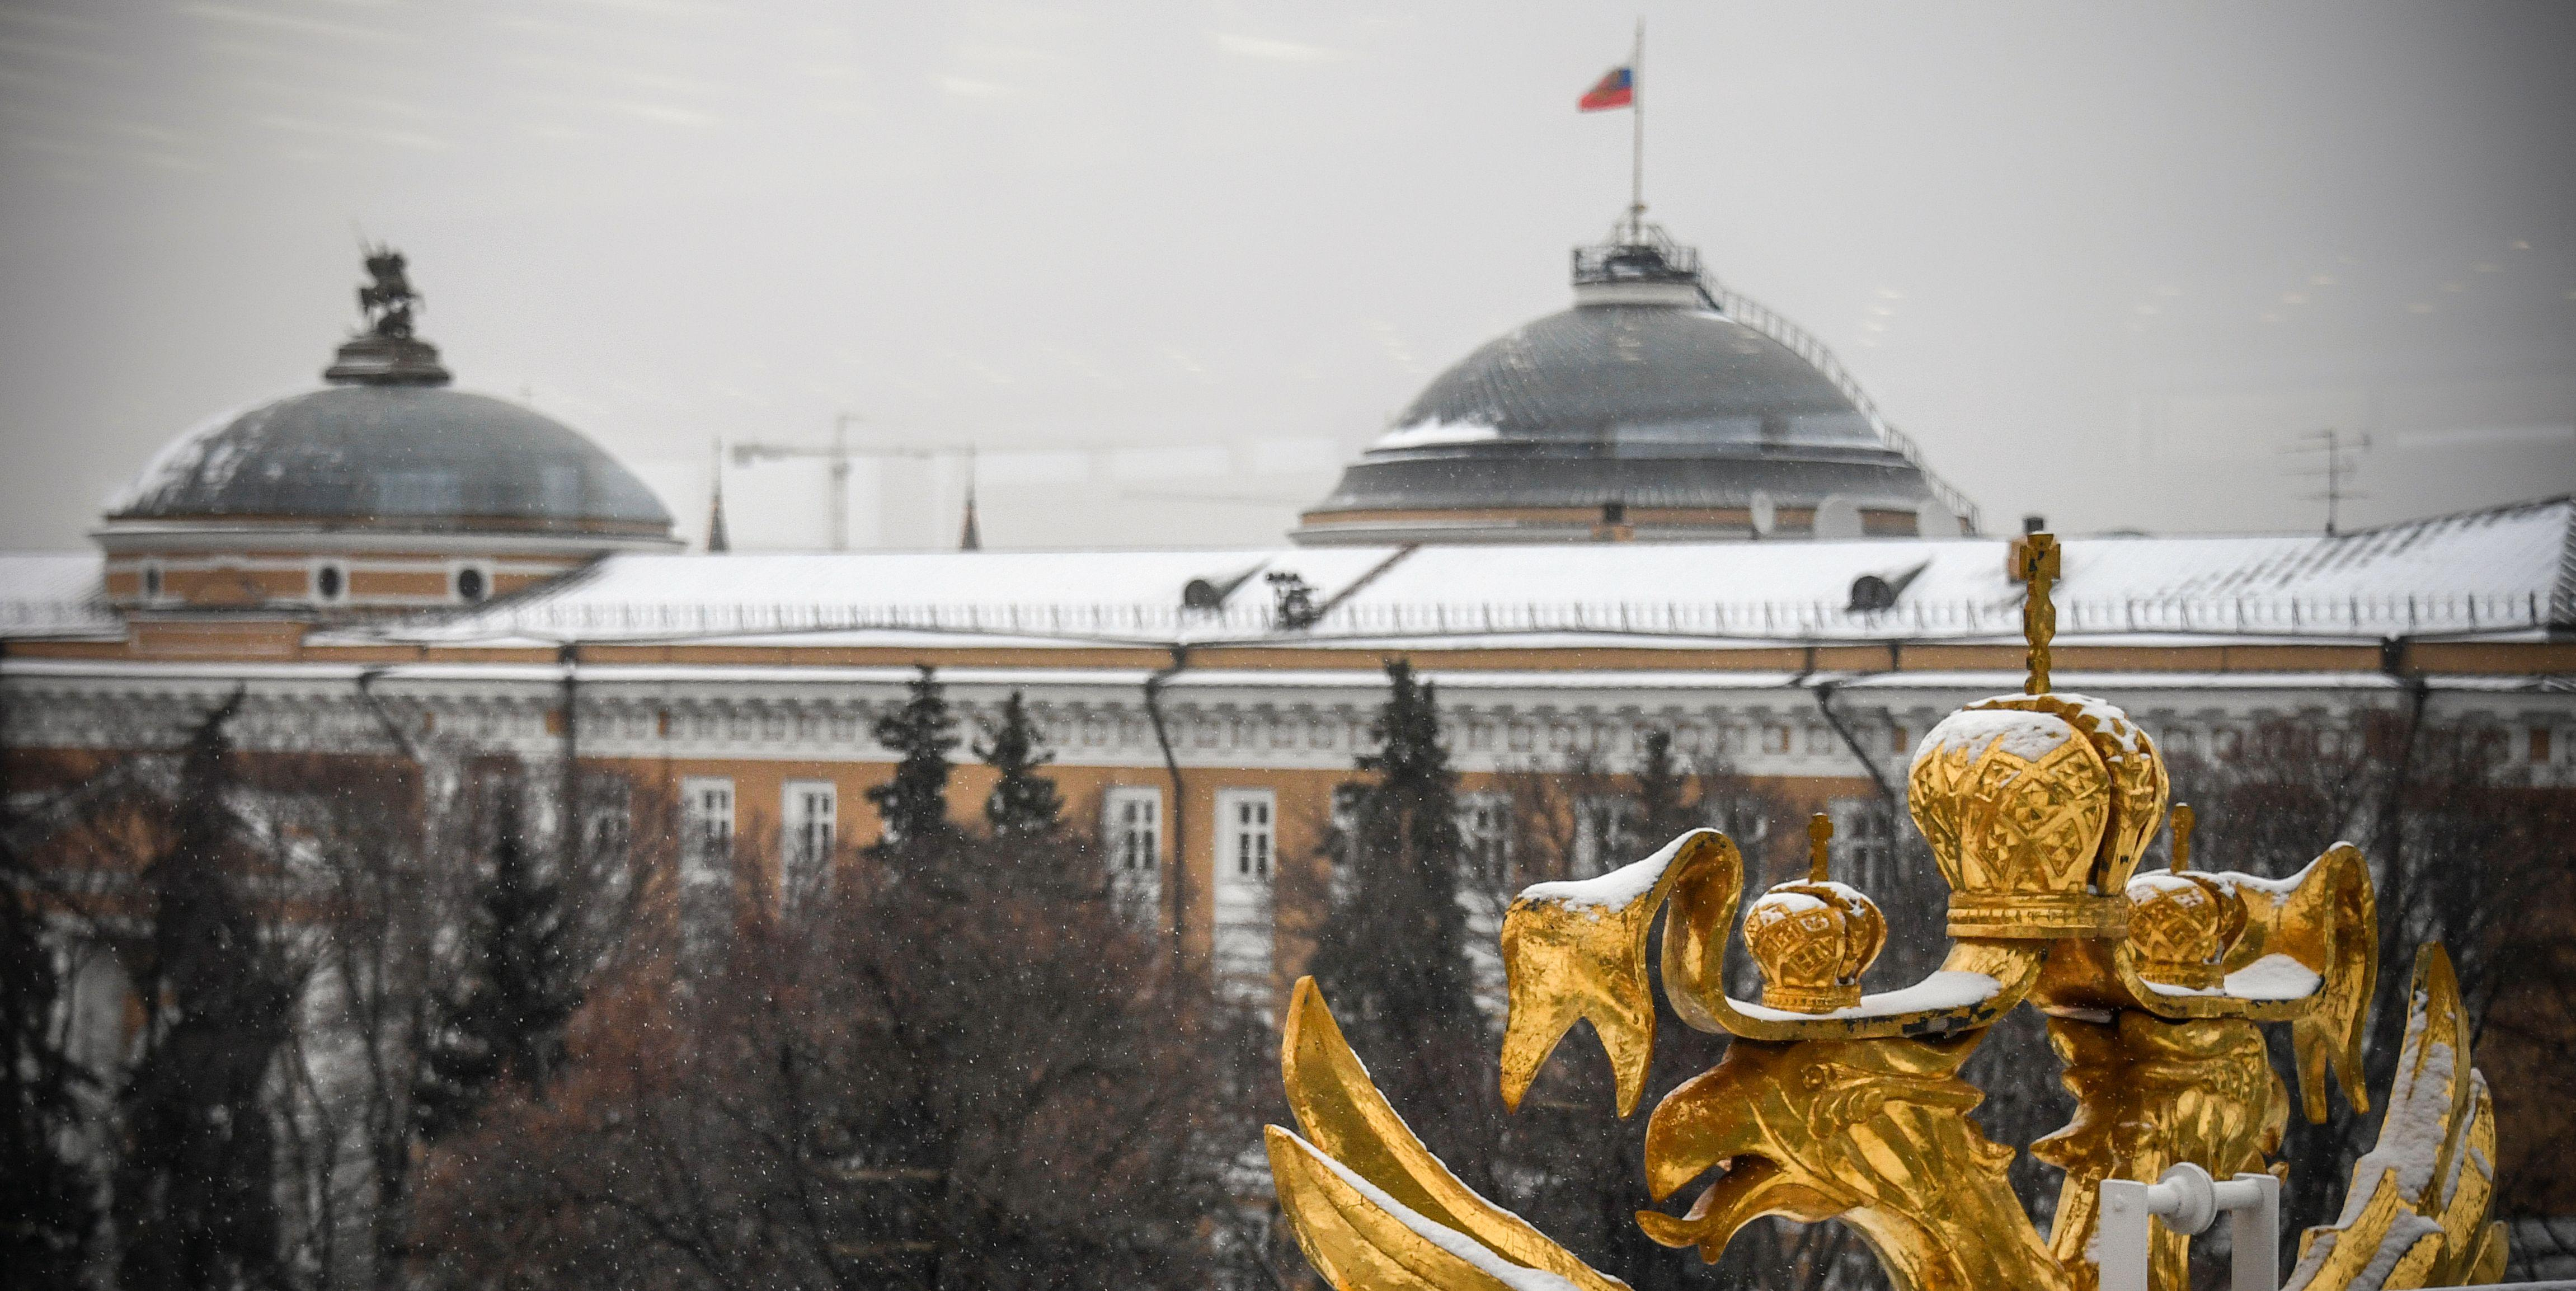 A general view of the so-called Building One of the Kremlin, which houses President Vladimir Putin's working office, in downtown Moscow on November 28, 2017.  / AFP PHOTO / Alexander NEMENOV        (Photo credit should read ALEXANDER NEMENOV/AFP/Getty Images)